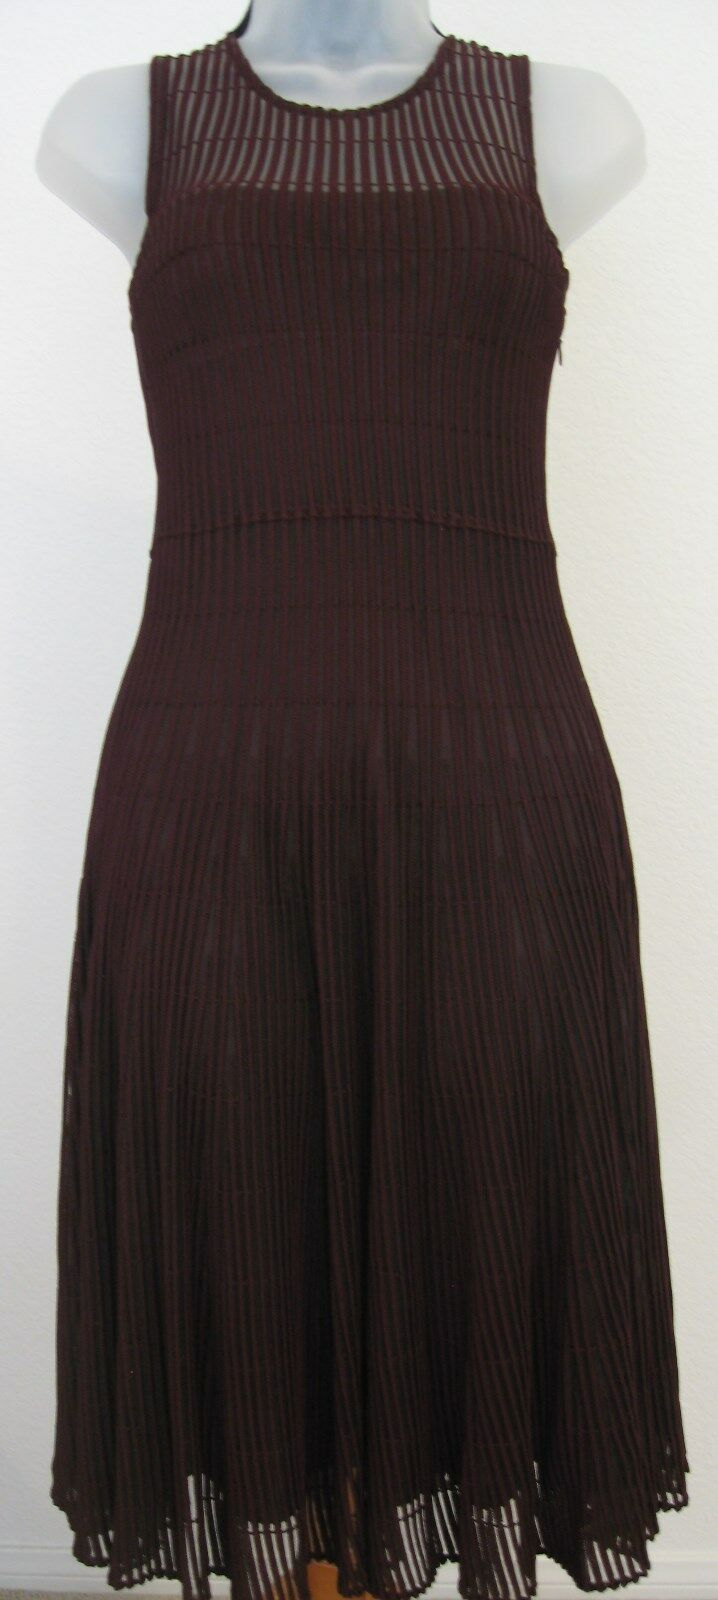 Christian Dior Raf Simons Burgundy Wine Knit Sleeveless Dress Dress Dress Size 36 a55b73